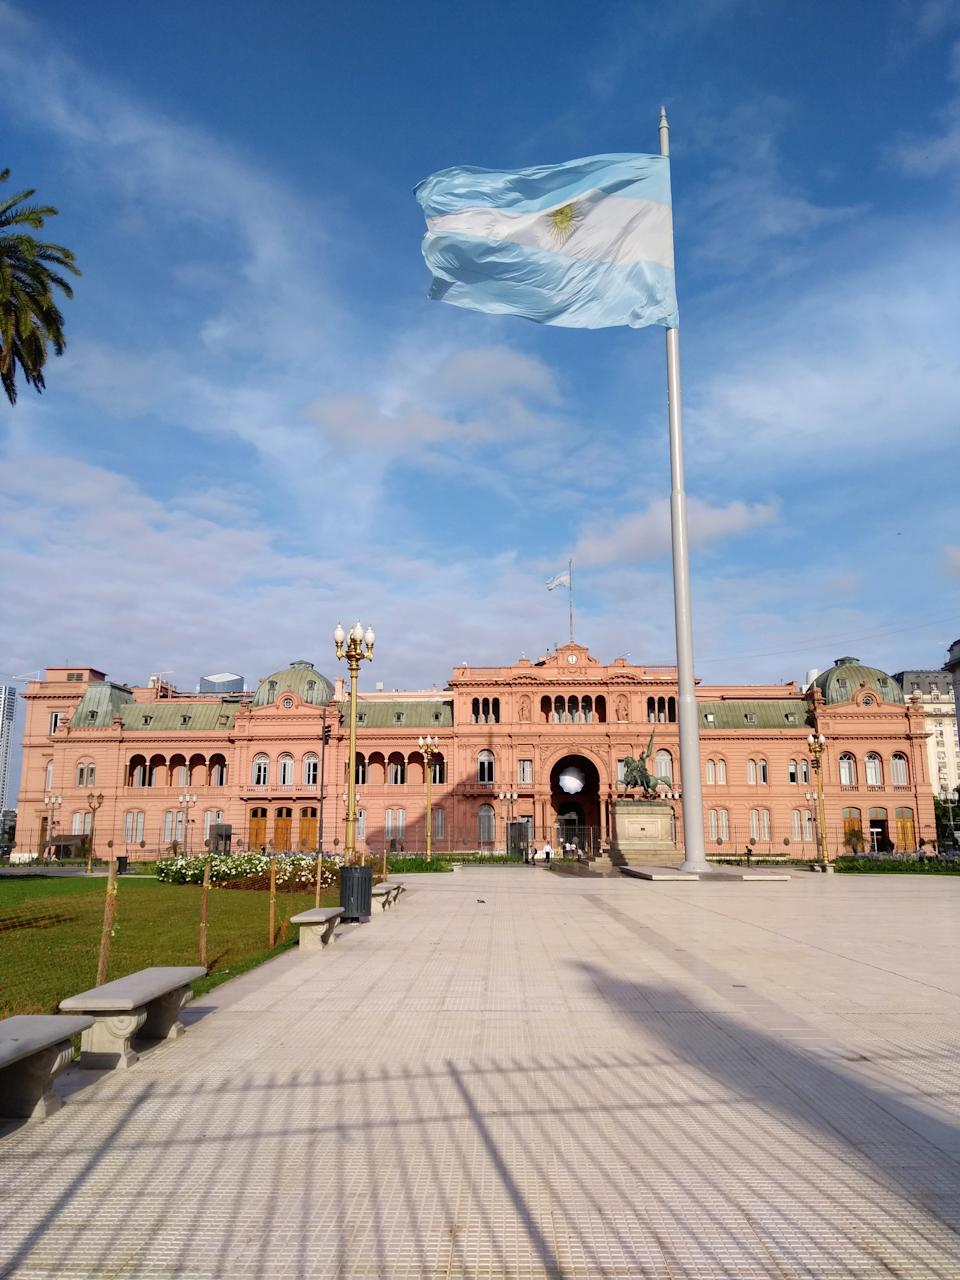 Buenos Aires is a multicultural city. The city is located on the western shore of the estuary of the Río de la Plata.